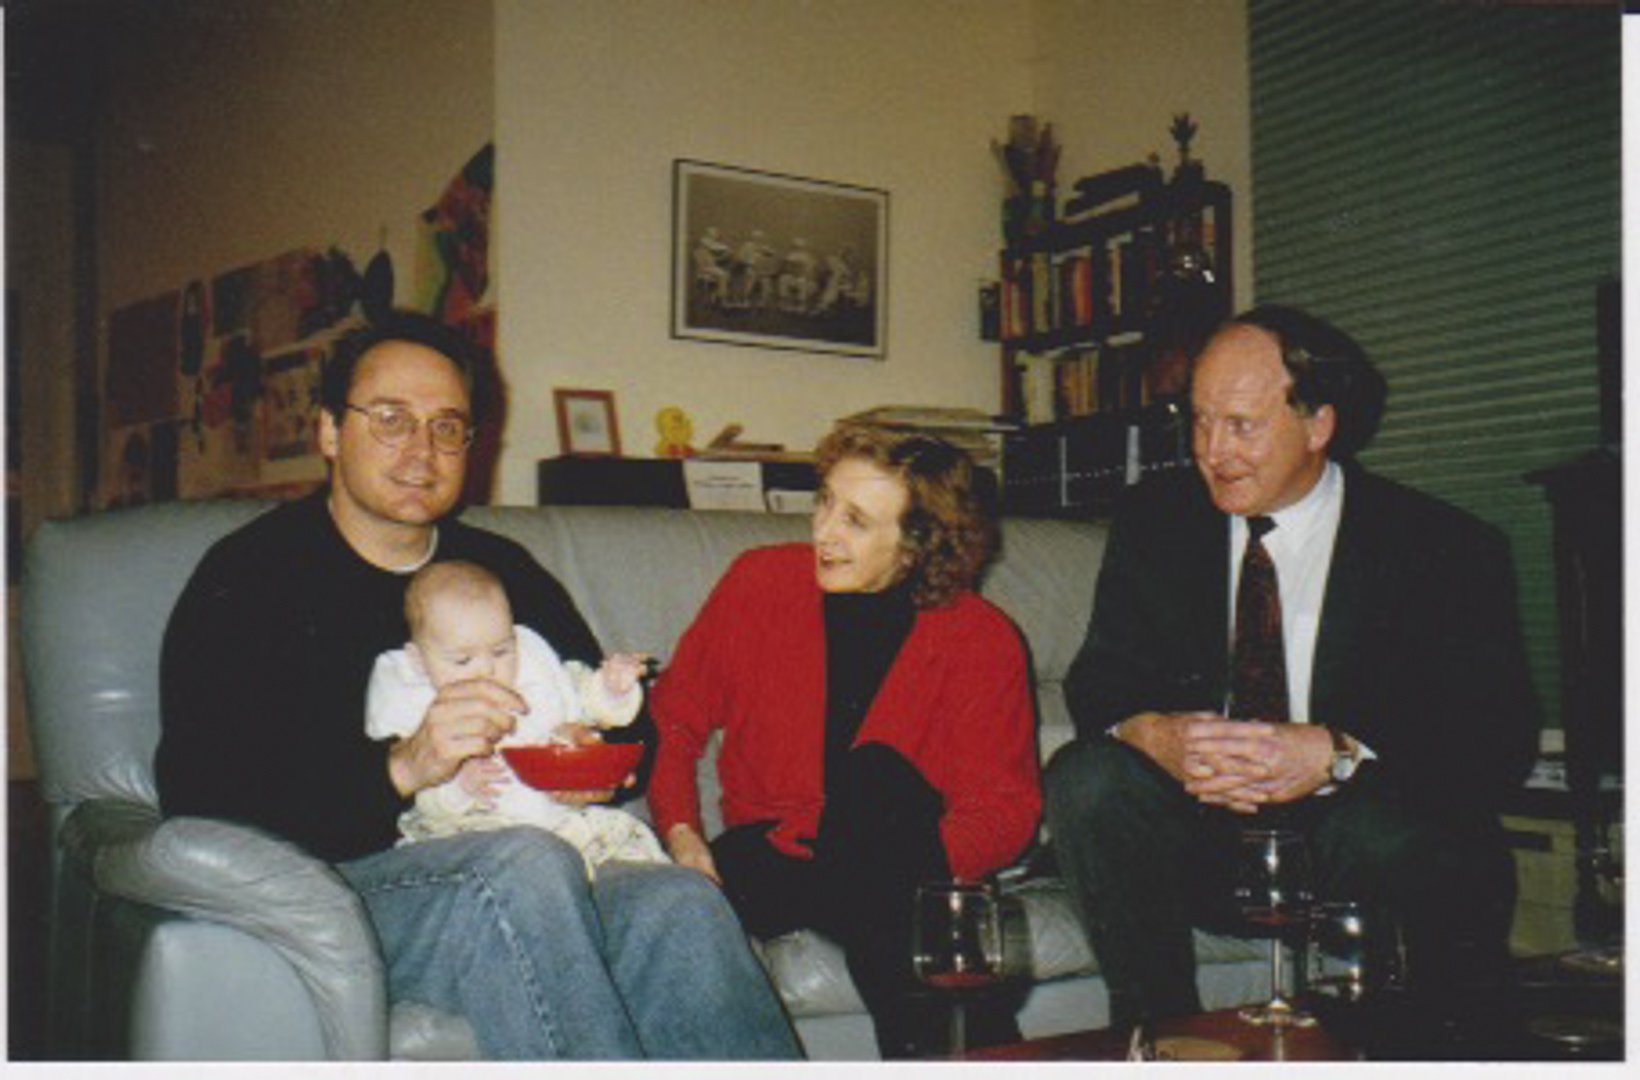 With his sister Elaine Lewis and his nephew and godson Richard Lewis c 1995